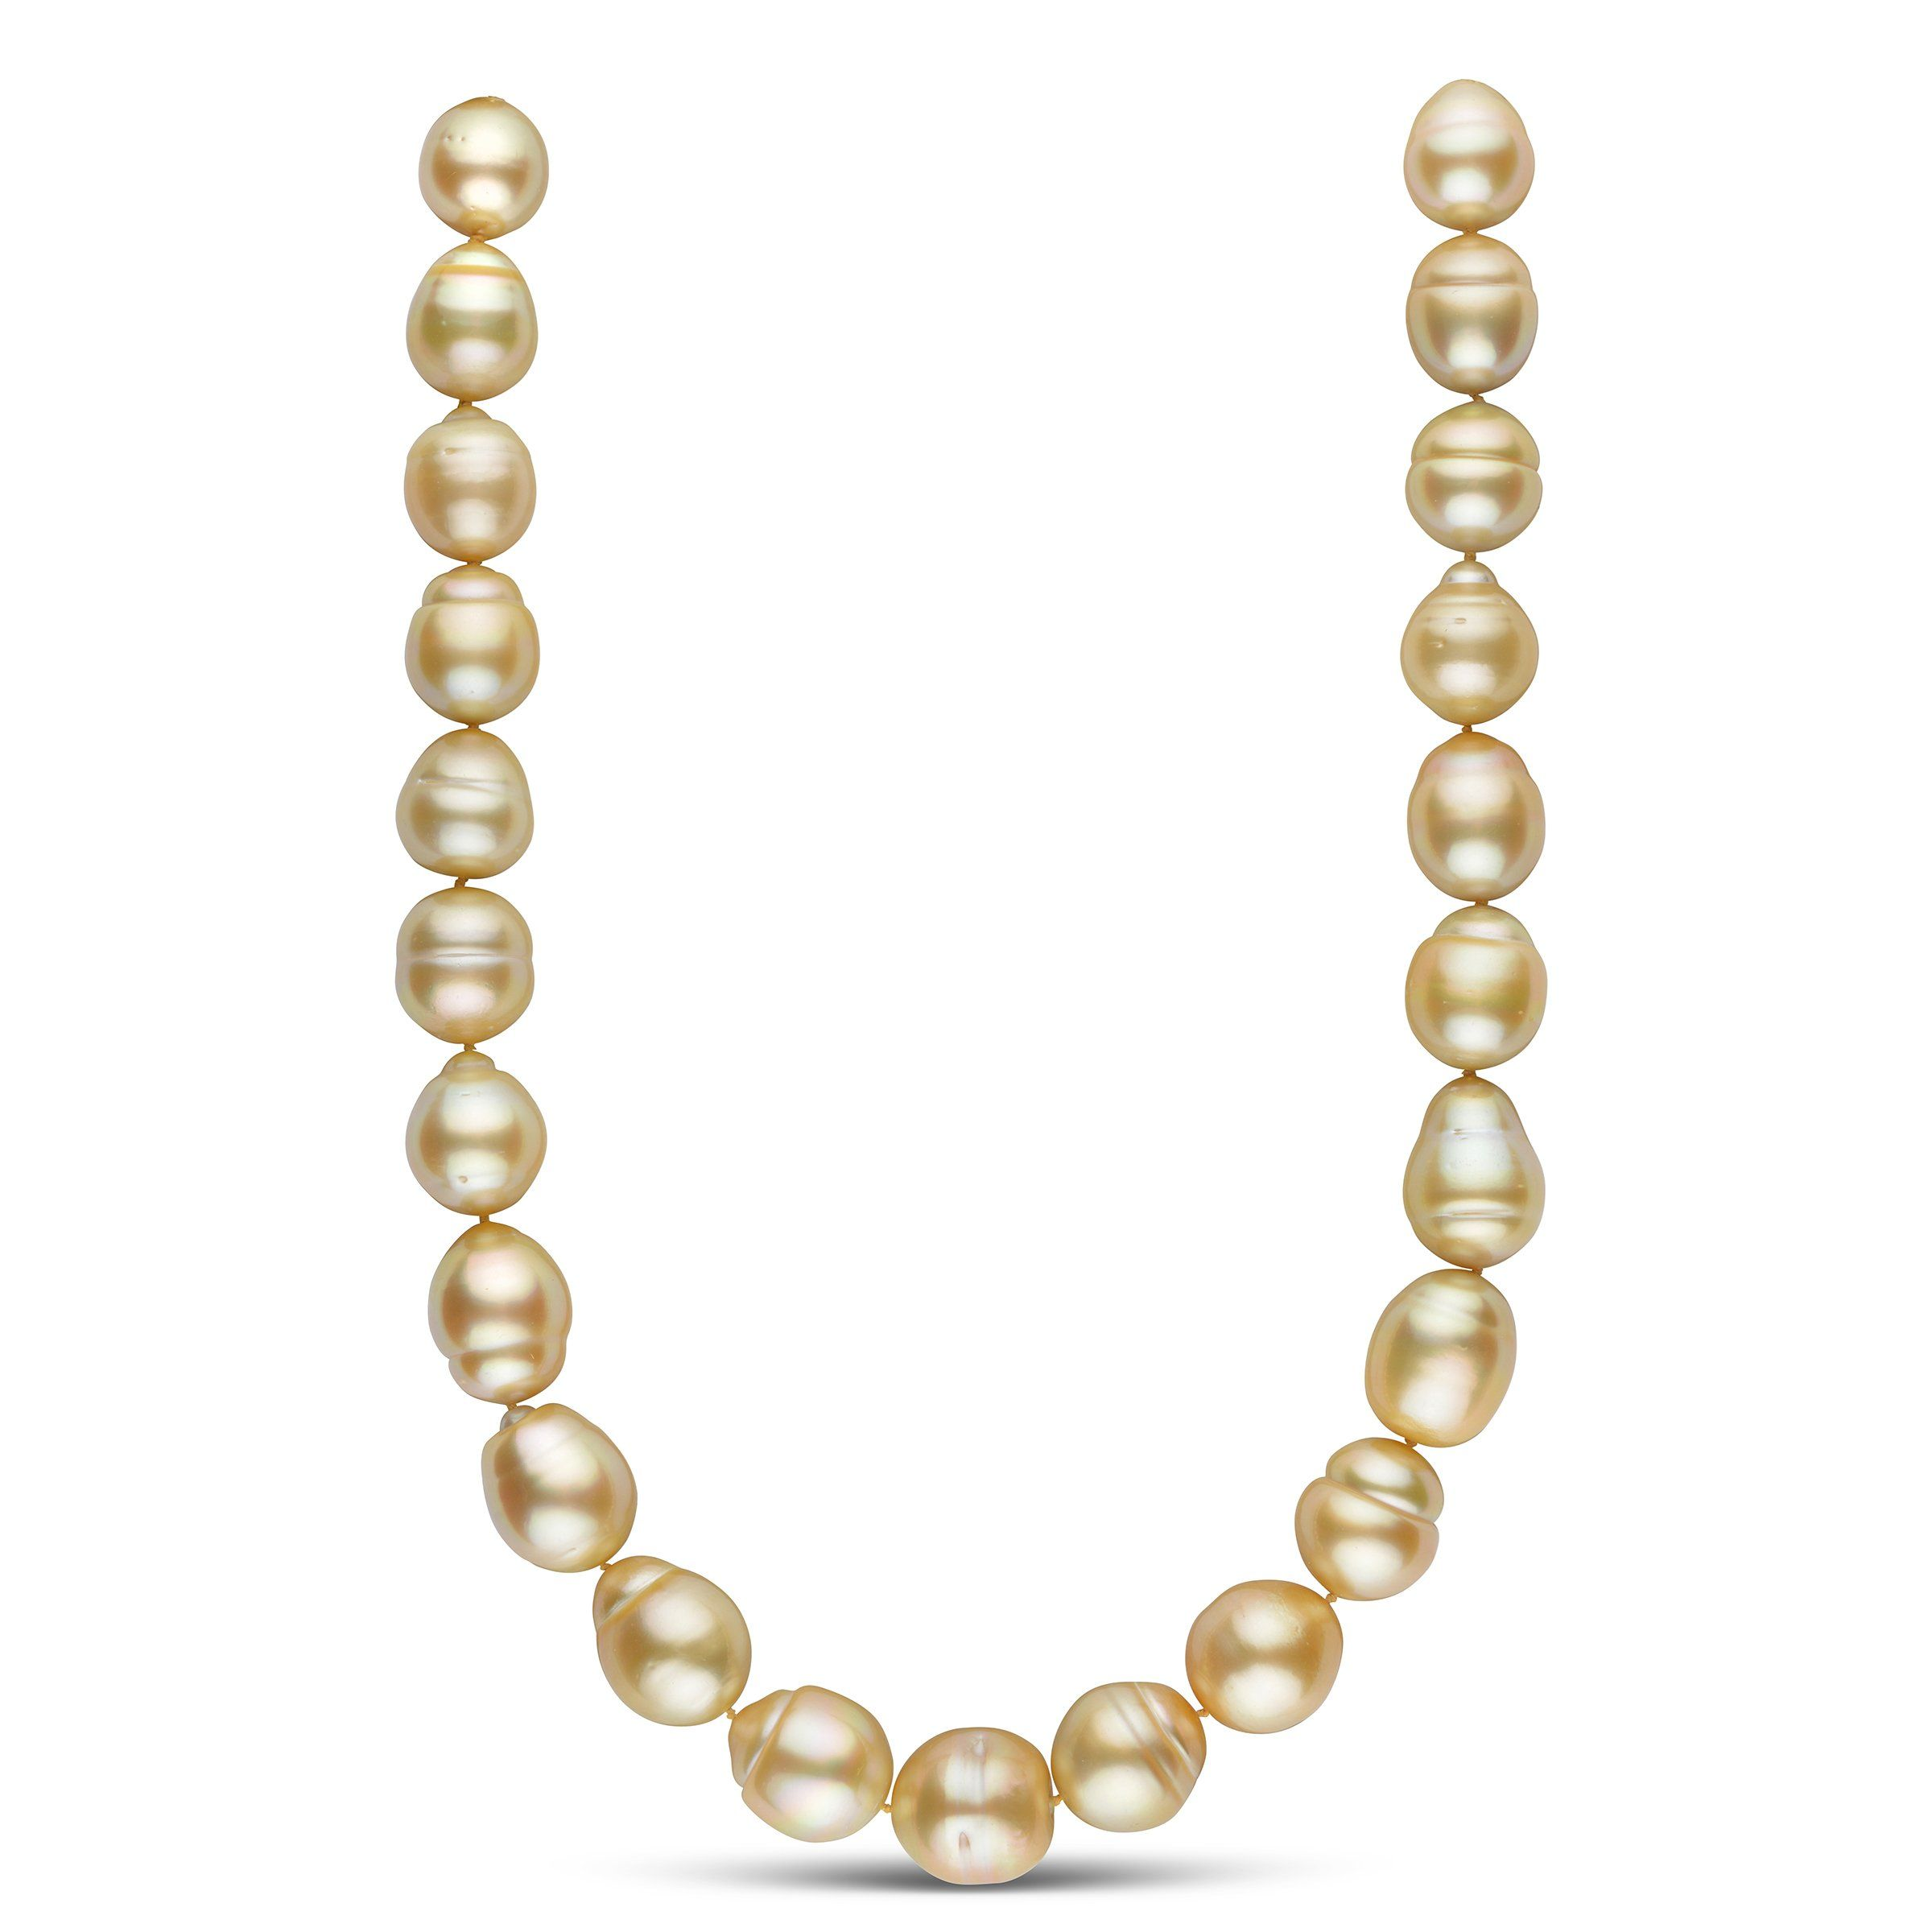 18 inch 15.0-17.2 mm AA+/AAA Golden South Sea Baroque Pearl Necklace